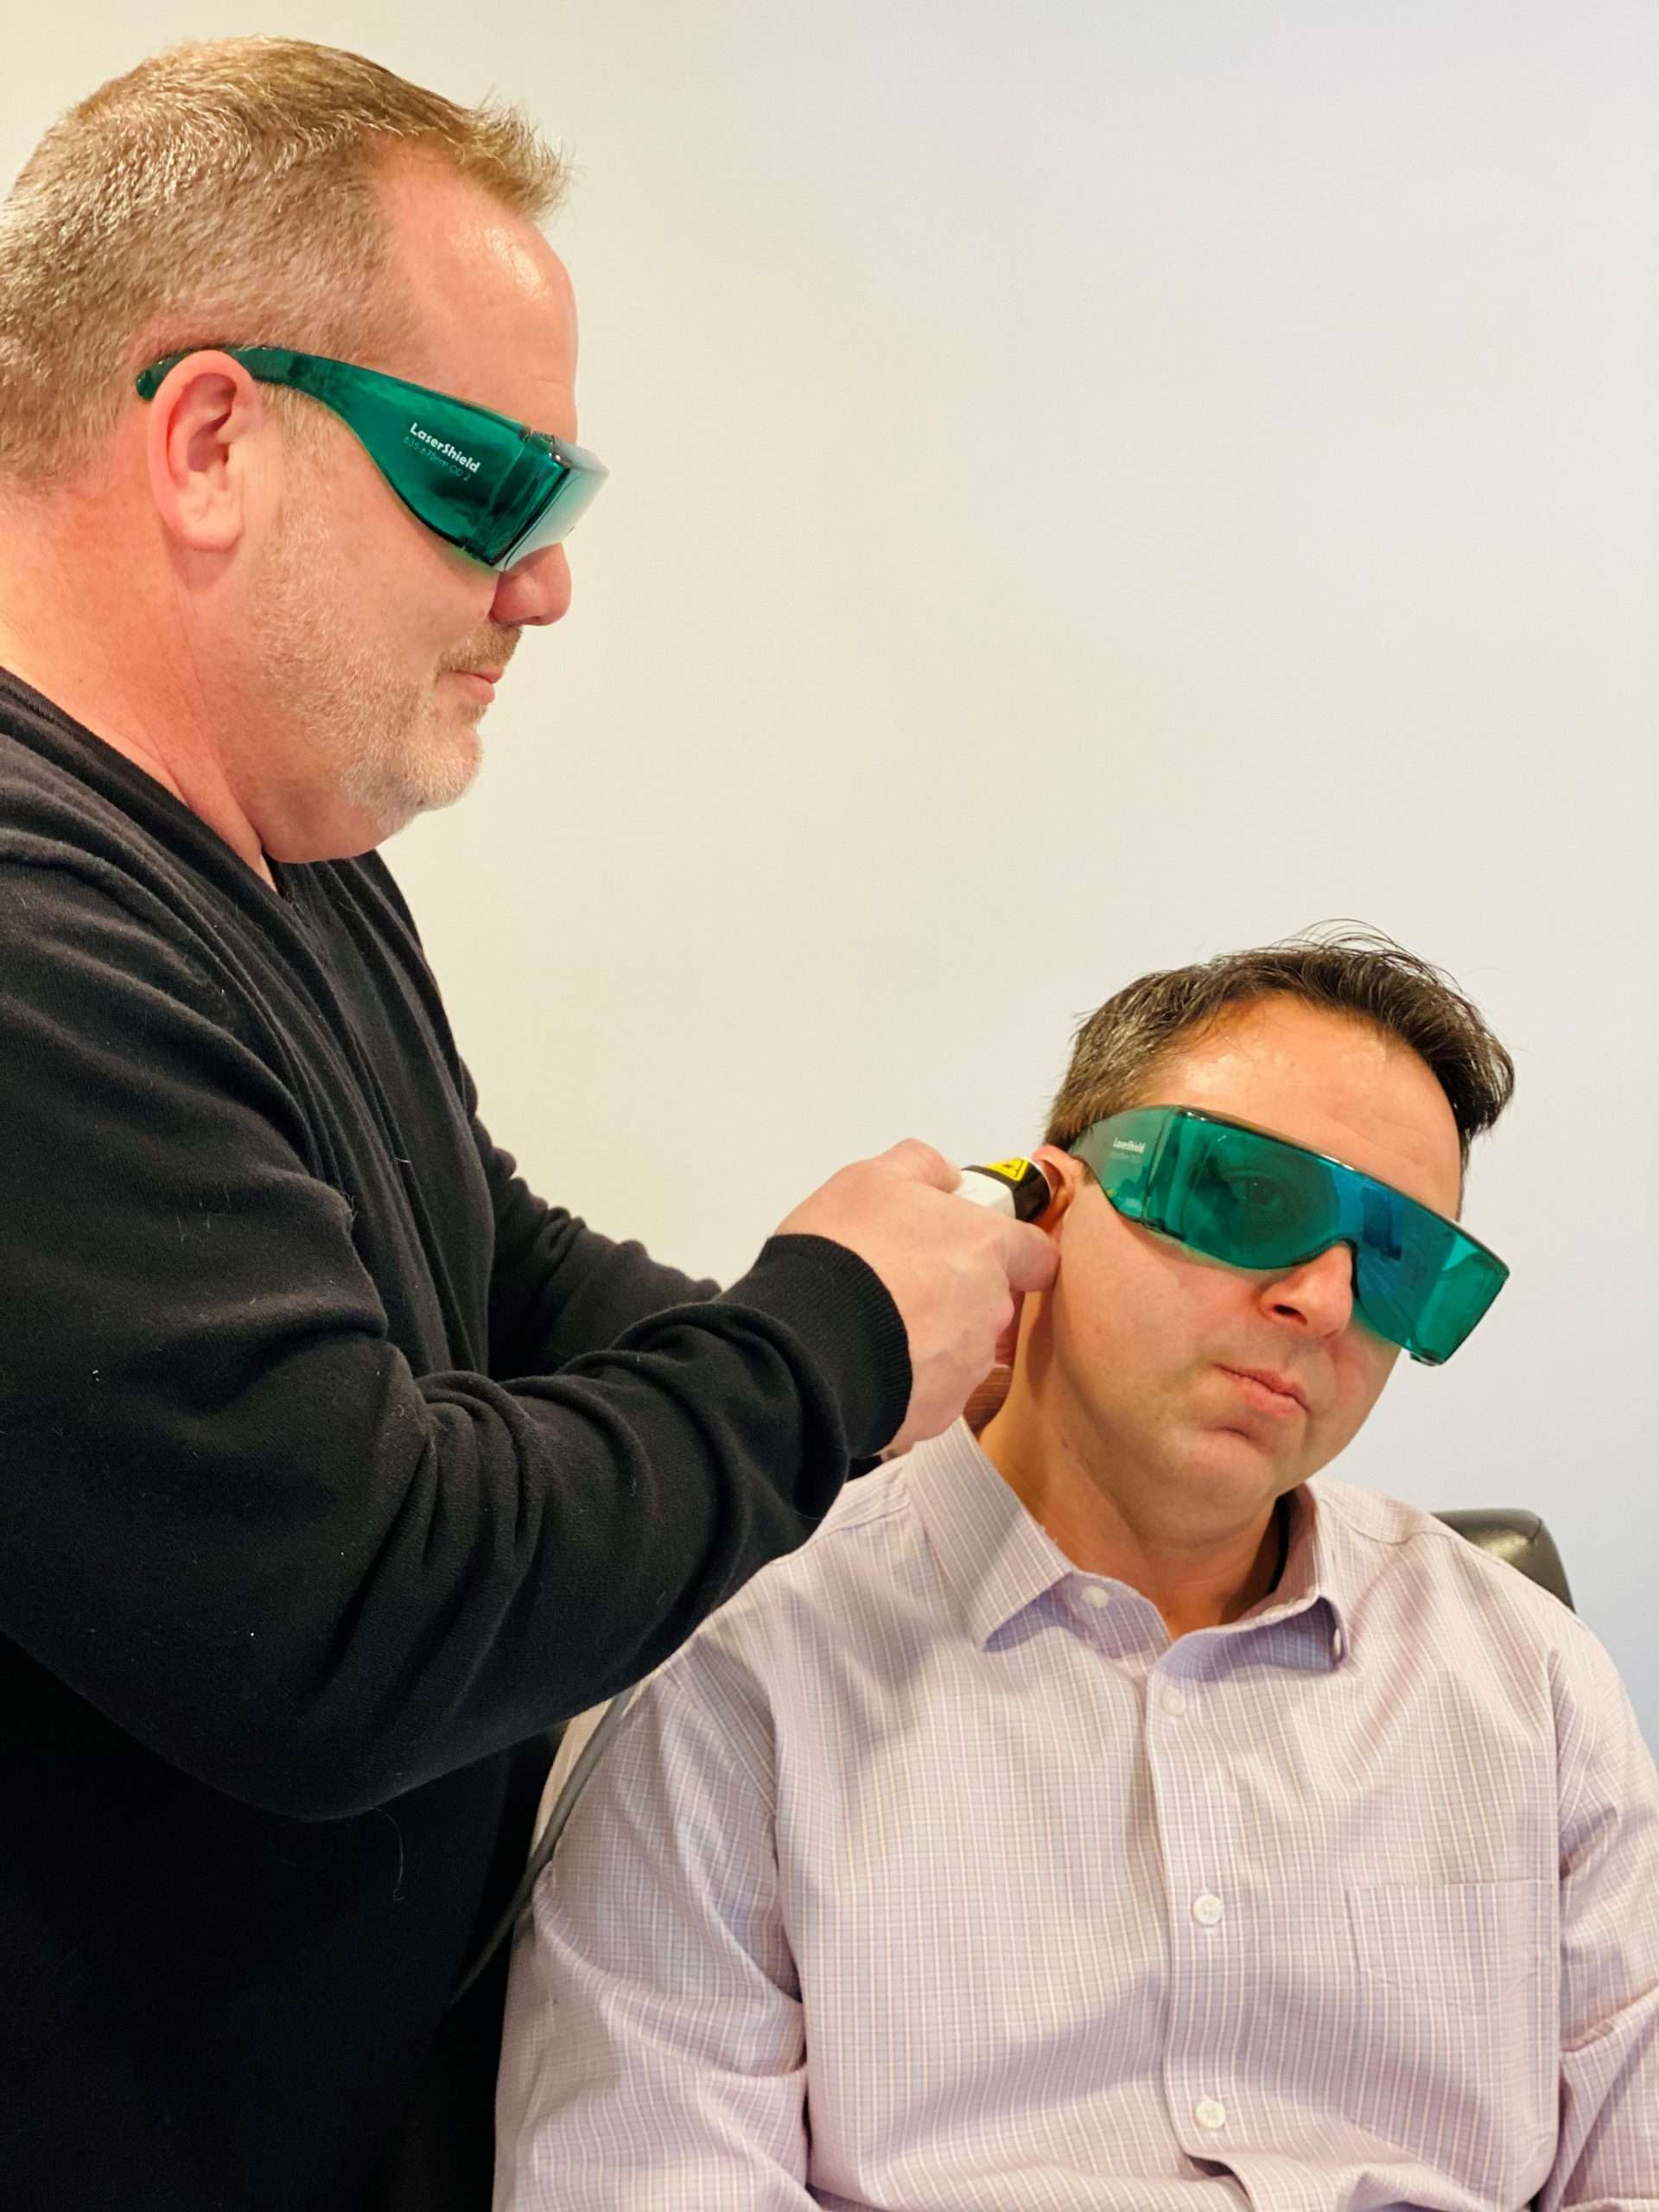 quit smoking program -cold laser therapy